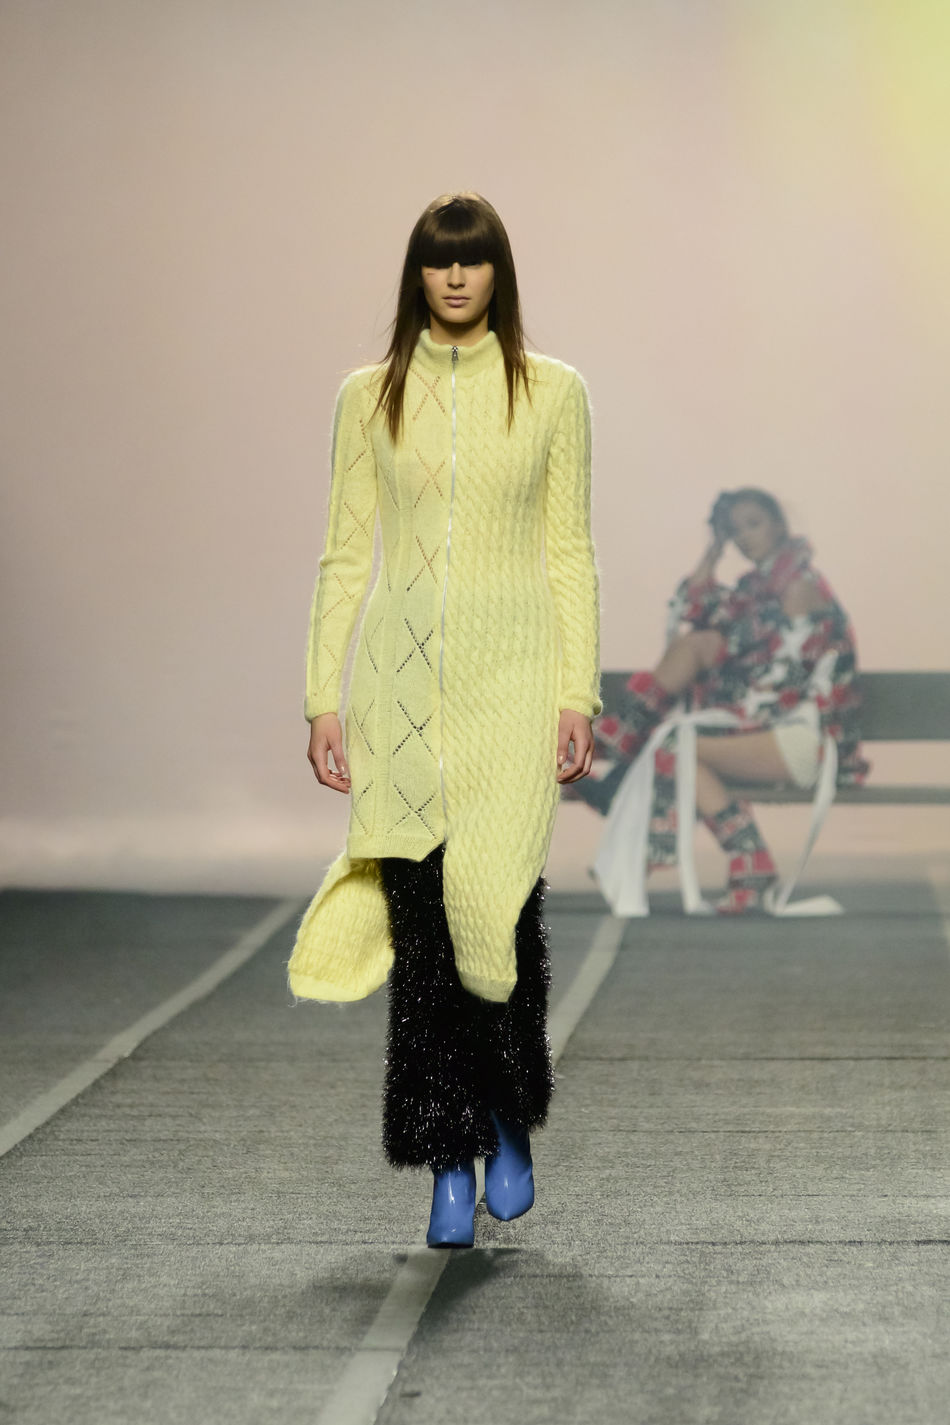 Maria Ke Fisherman during Mercedes Benz Fashion Week Autumn-Winter 2016 in Madrid. Clothes Editorial  Editorial Fashion Fashion Fashion Fashion Week Front View Lifestyles Mbfw Mbfw2016 Mbfwmadrid Mercedes Benz Fashion Week Model Person Real People Standing Young Women